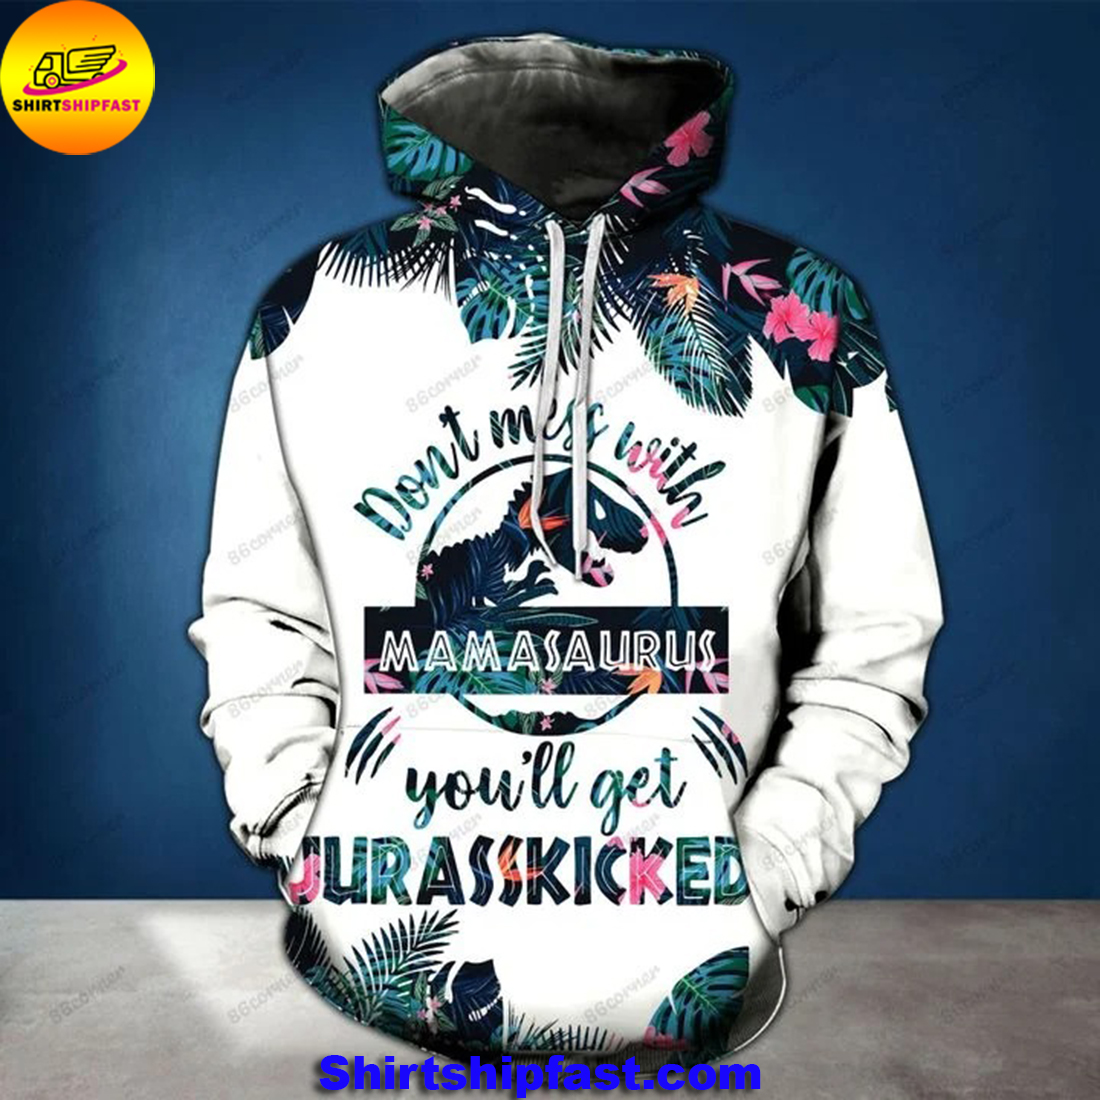 Don't mess with mamasaurus you'll get jurasskicked 3d hoodie